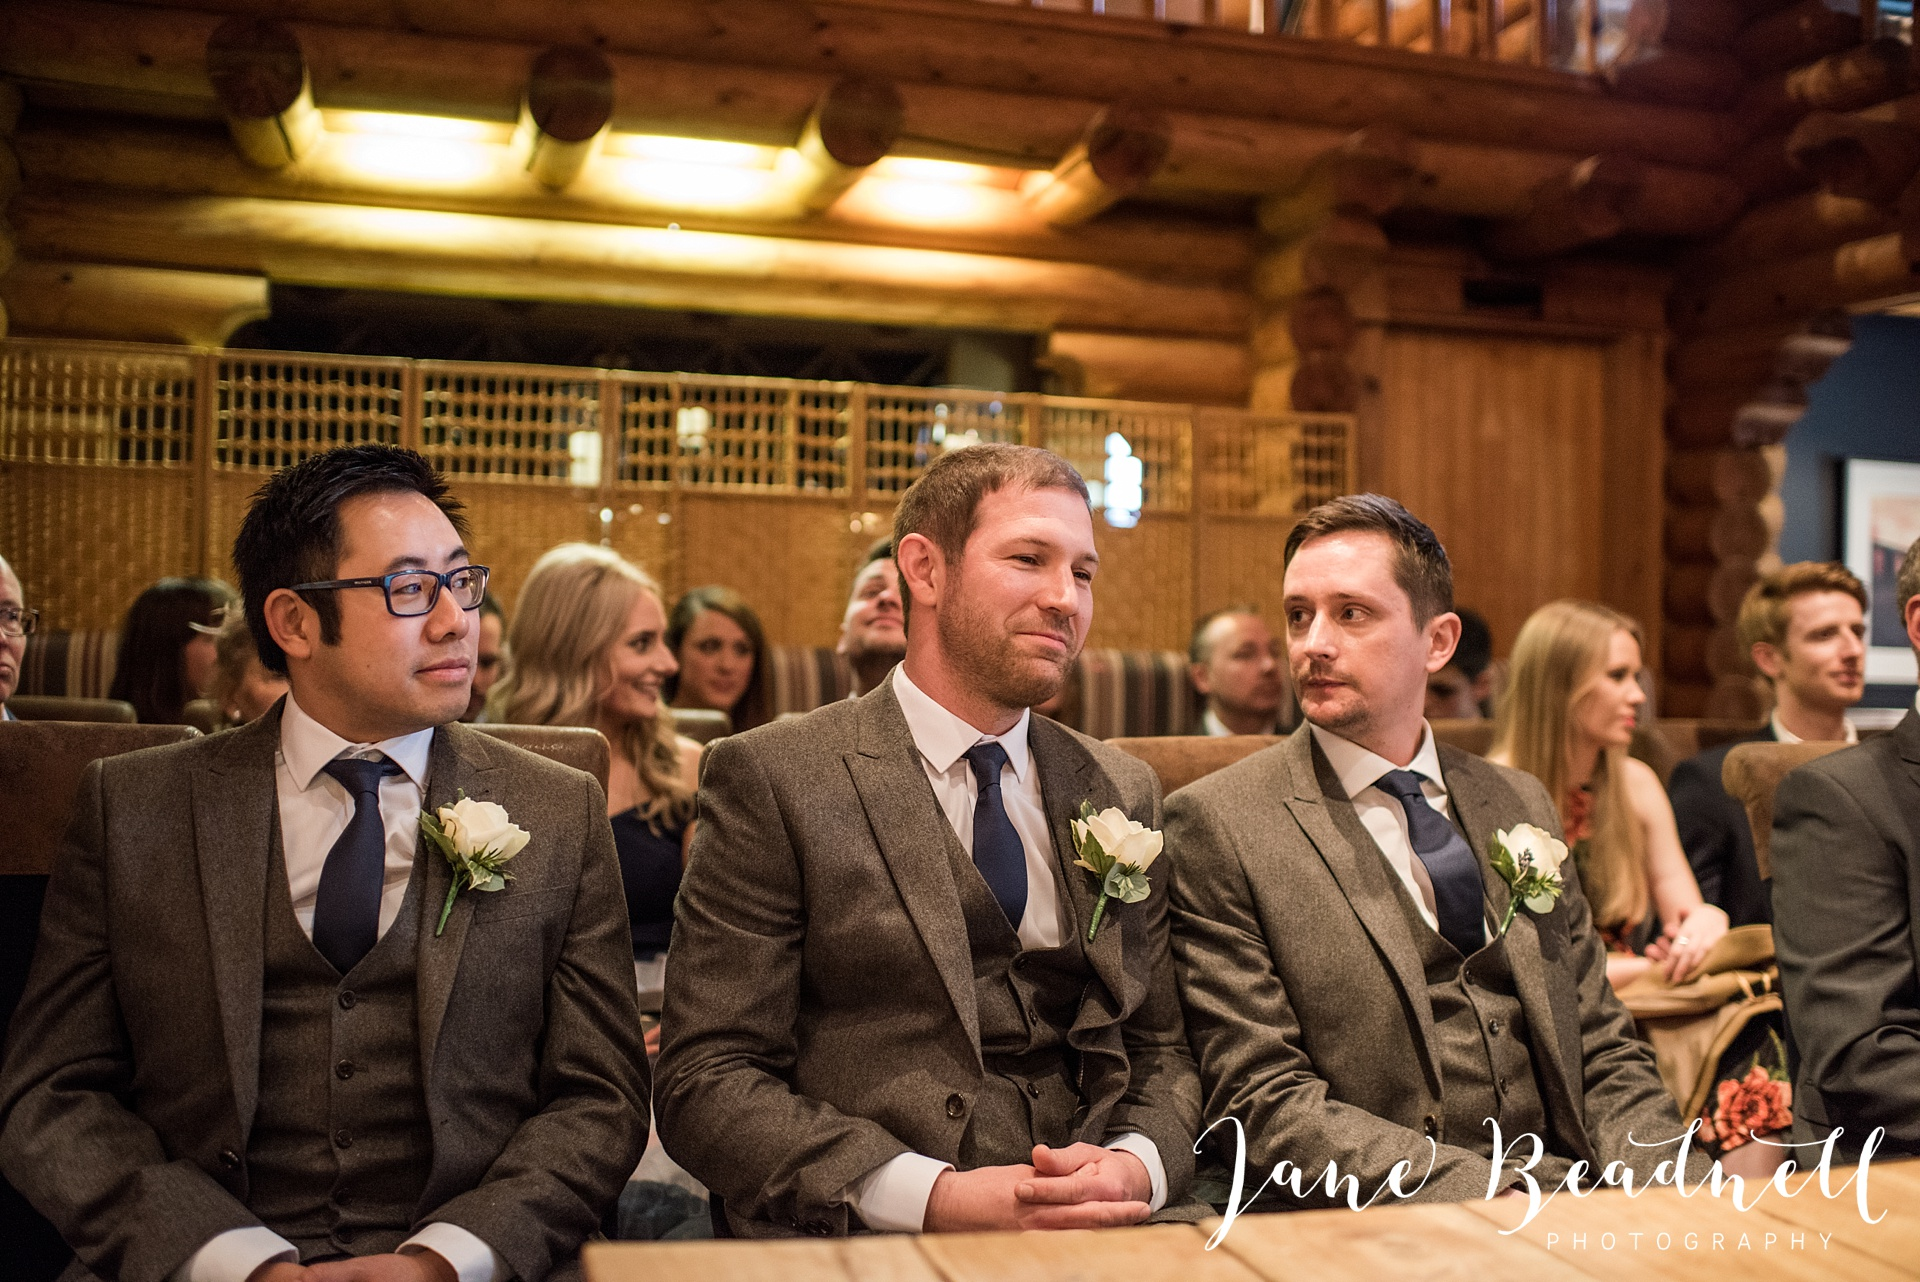 Otley Chevin Lodge wedding photography by Jane Beadnell Photography Leeds_0041